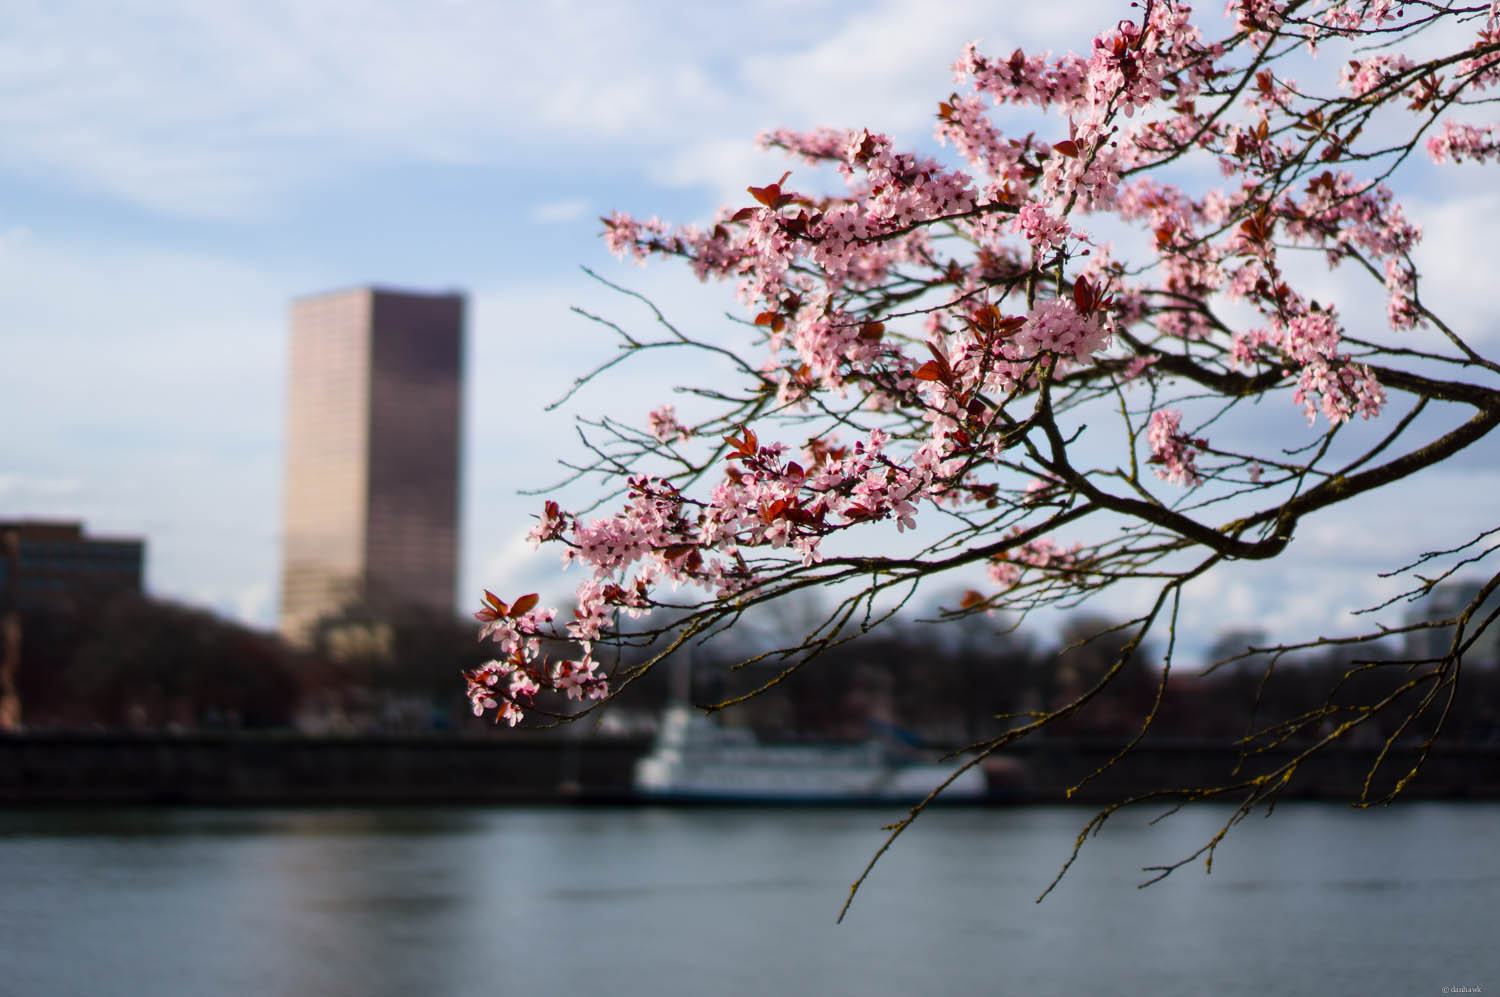 Spring in Portland | 365 Project | January 15th, 2013 | 35mm, f/1.8, ISO 100, 1/4000